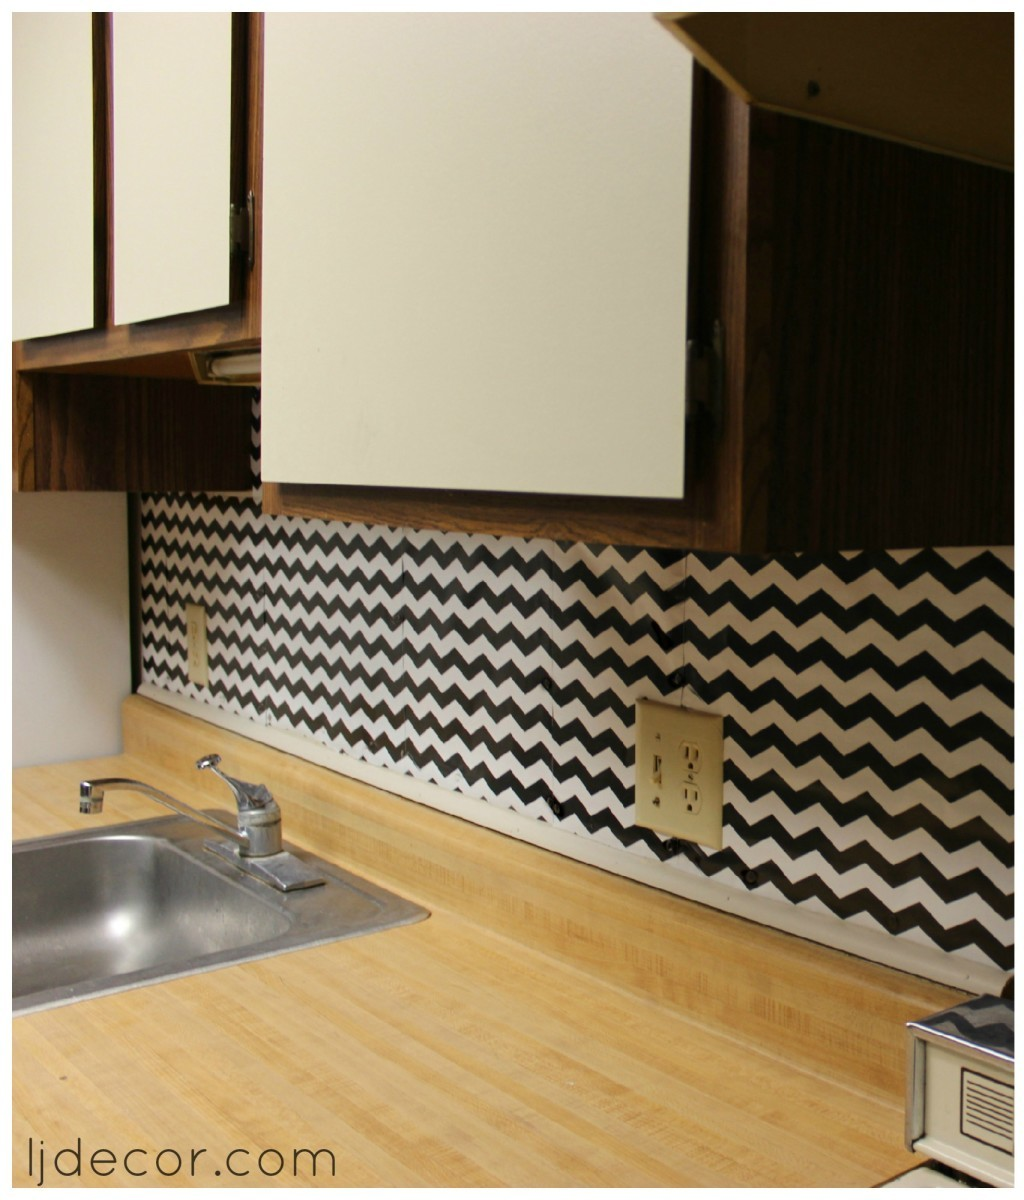 apartment living temporary backsplash ljdecor